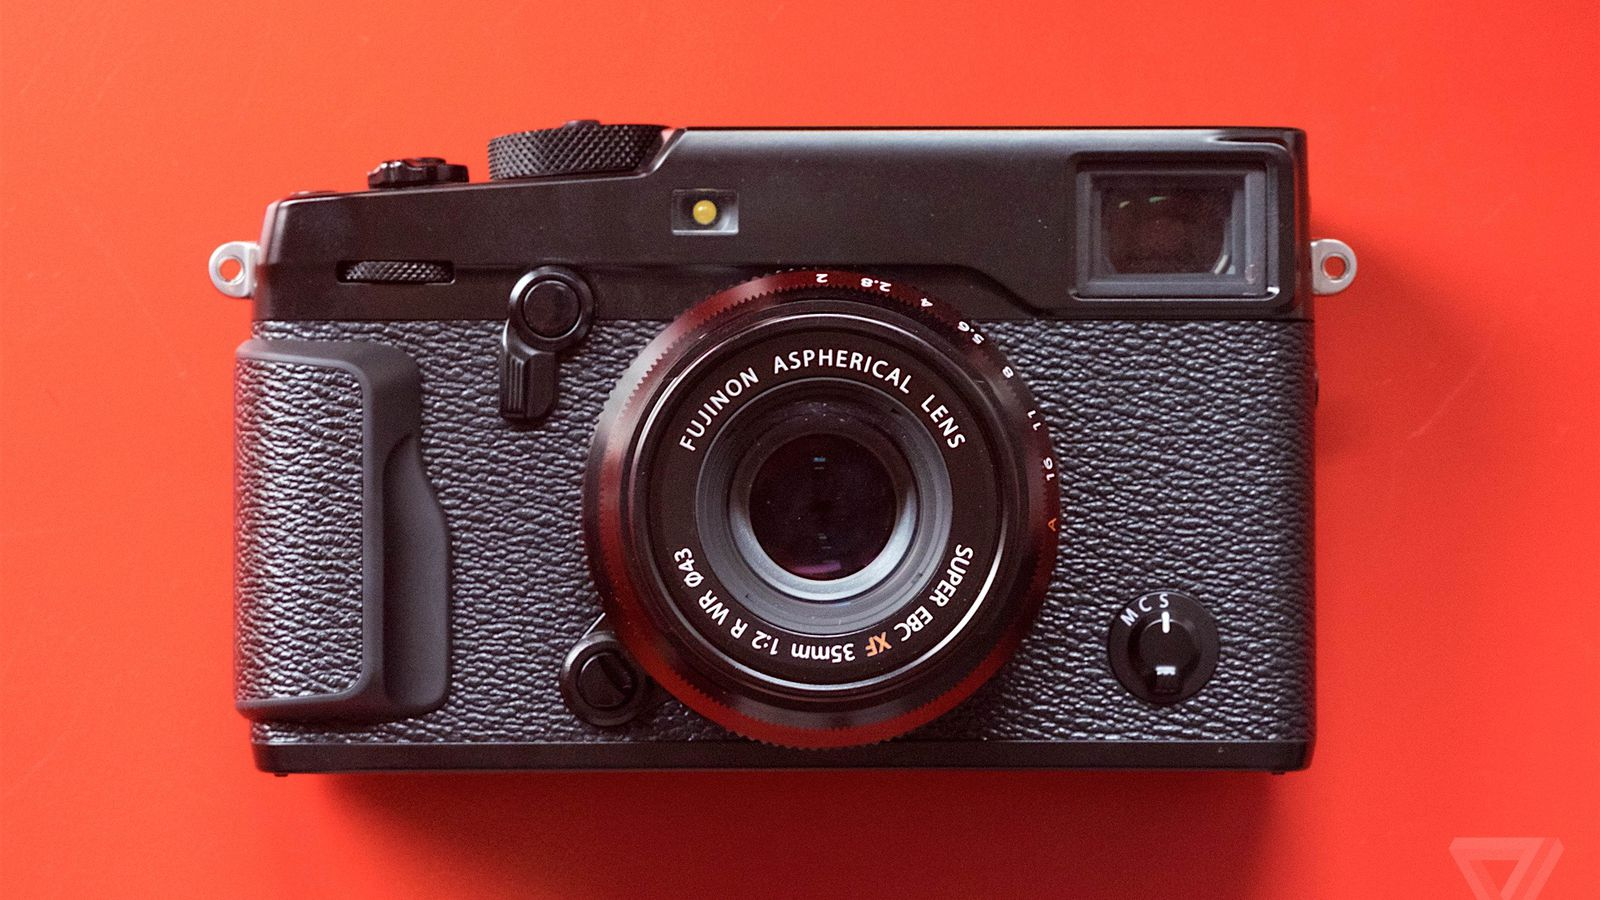 fujifilm x pro2 review my favorite camera the verge. Black Bedroom Furniture Sets. Home Design Ideas